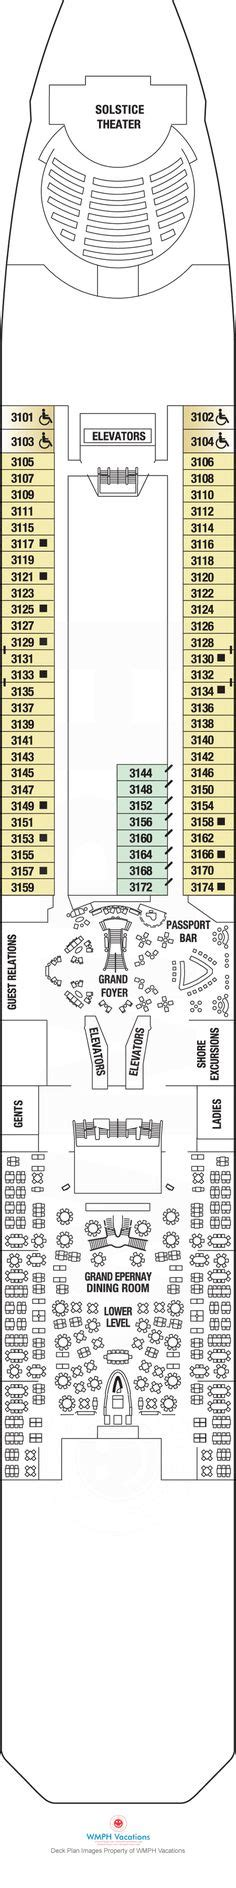 celebrity solstice floor plan 1000 images about on the water on pinterest speed boats yachts and super yachts